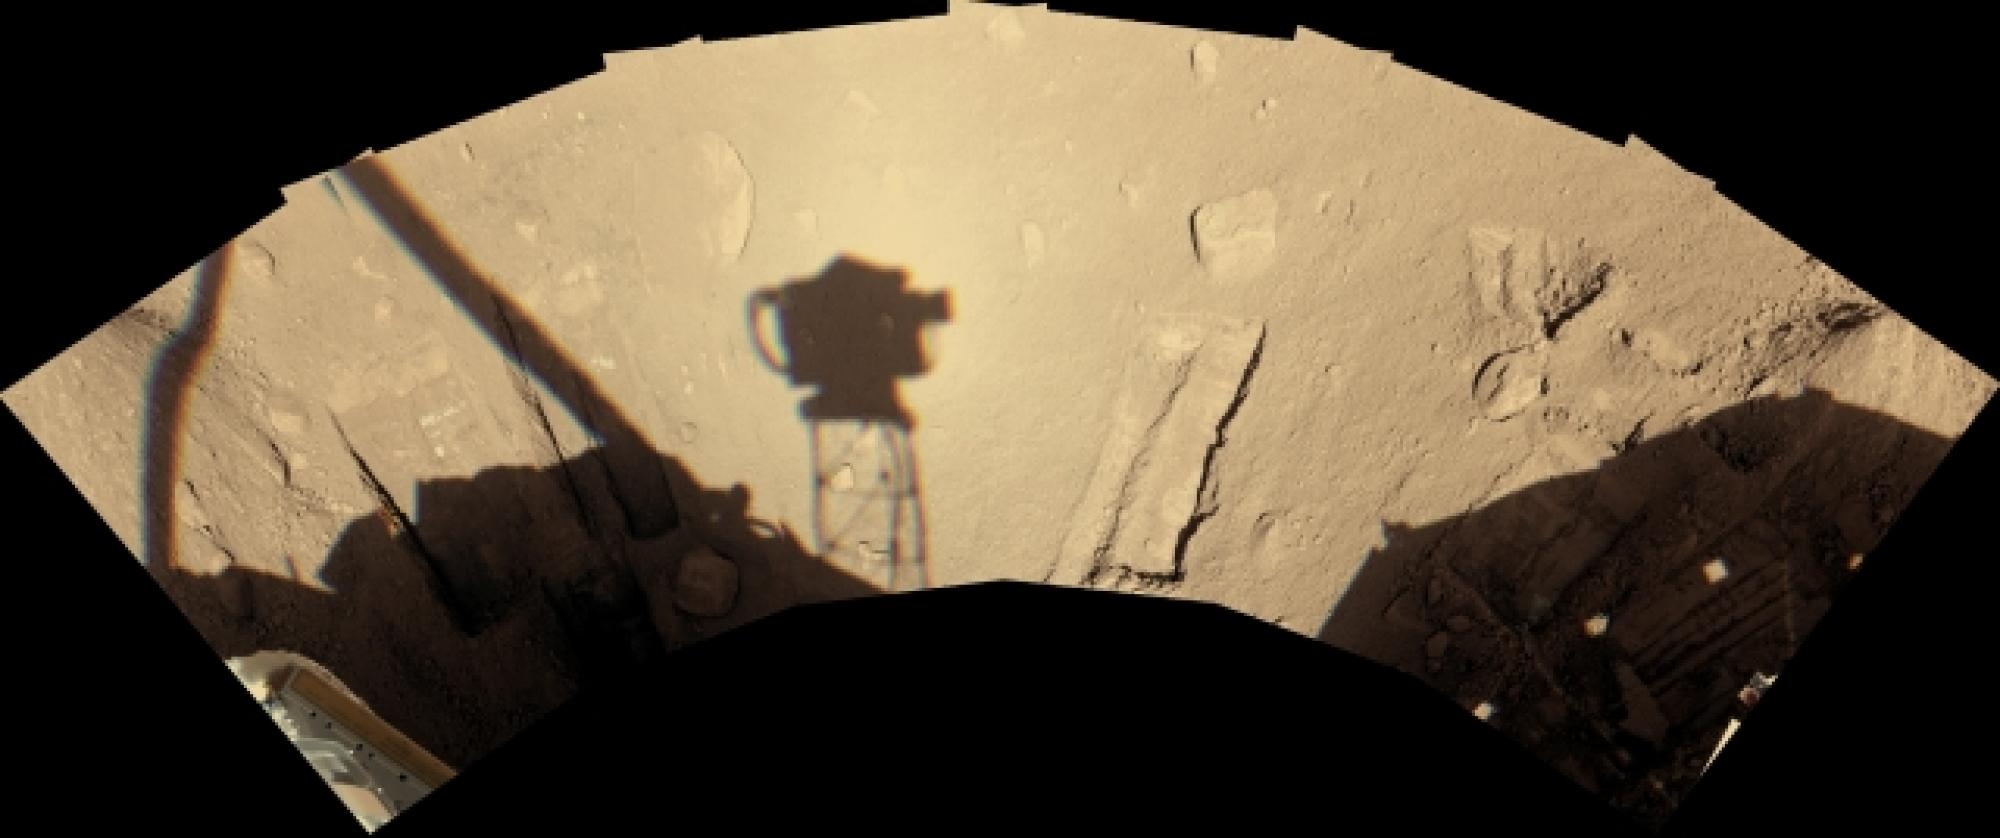 The lander's Surface Stereo Imager camera recorded its view of the workspace on Sol 90, early afternoon local Mars time . The shadow of the camera itself, atop its mast, is just left of the center of the image and roughly a third of a meter  wide.